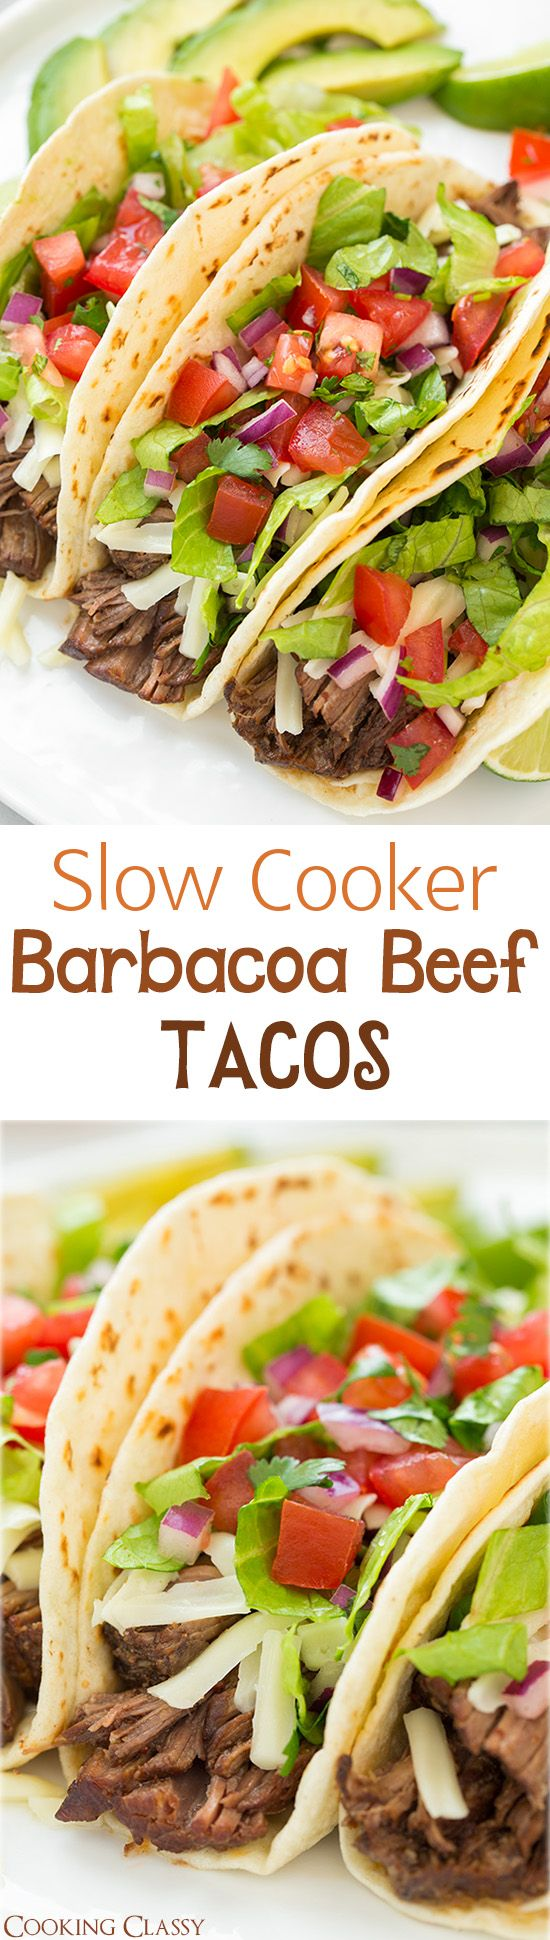 Slow Cooker Barbacoa Beef Tacos (Chipotle Copycat) – these are unbelievably delicious! My husband said the